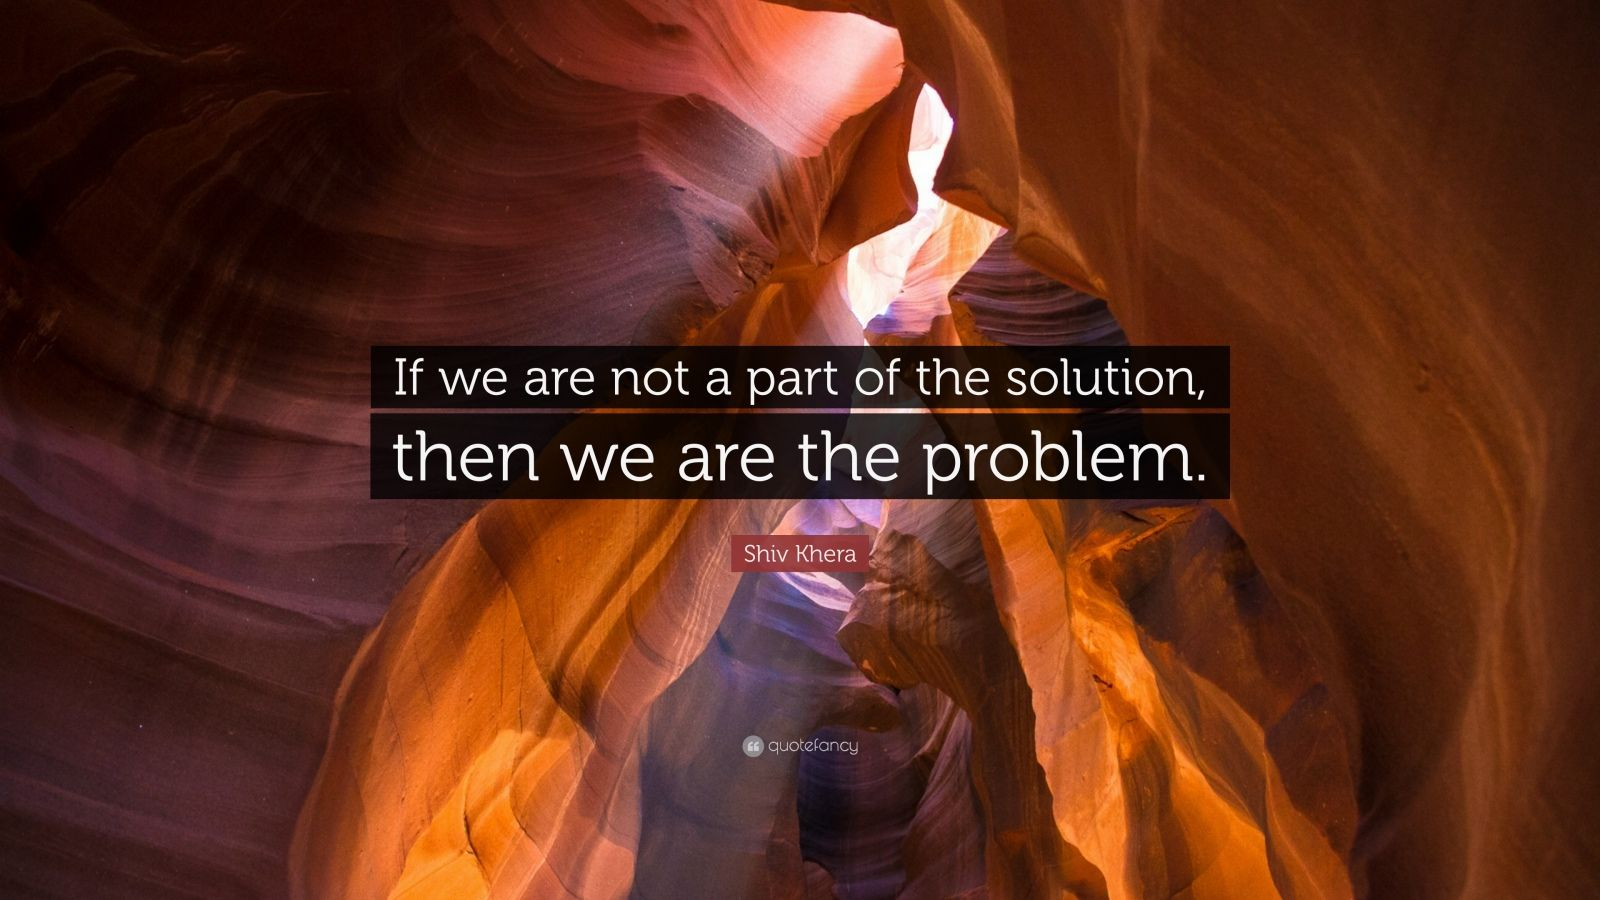 """Shiv Khera Quote: """"If we are not a part of the solution, then we are the problem."""""""